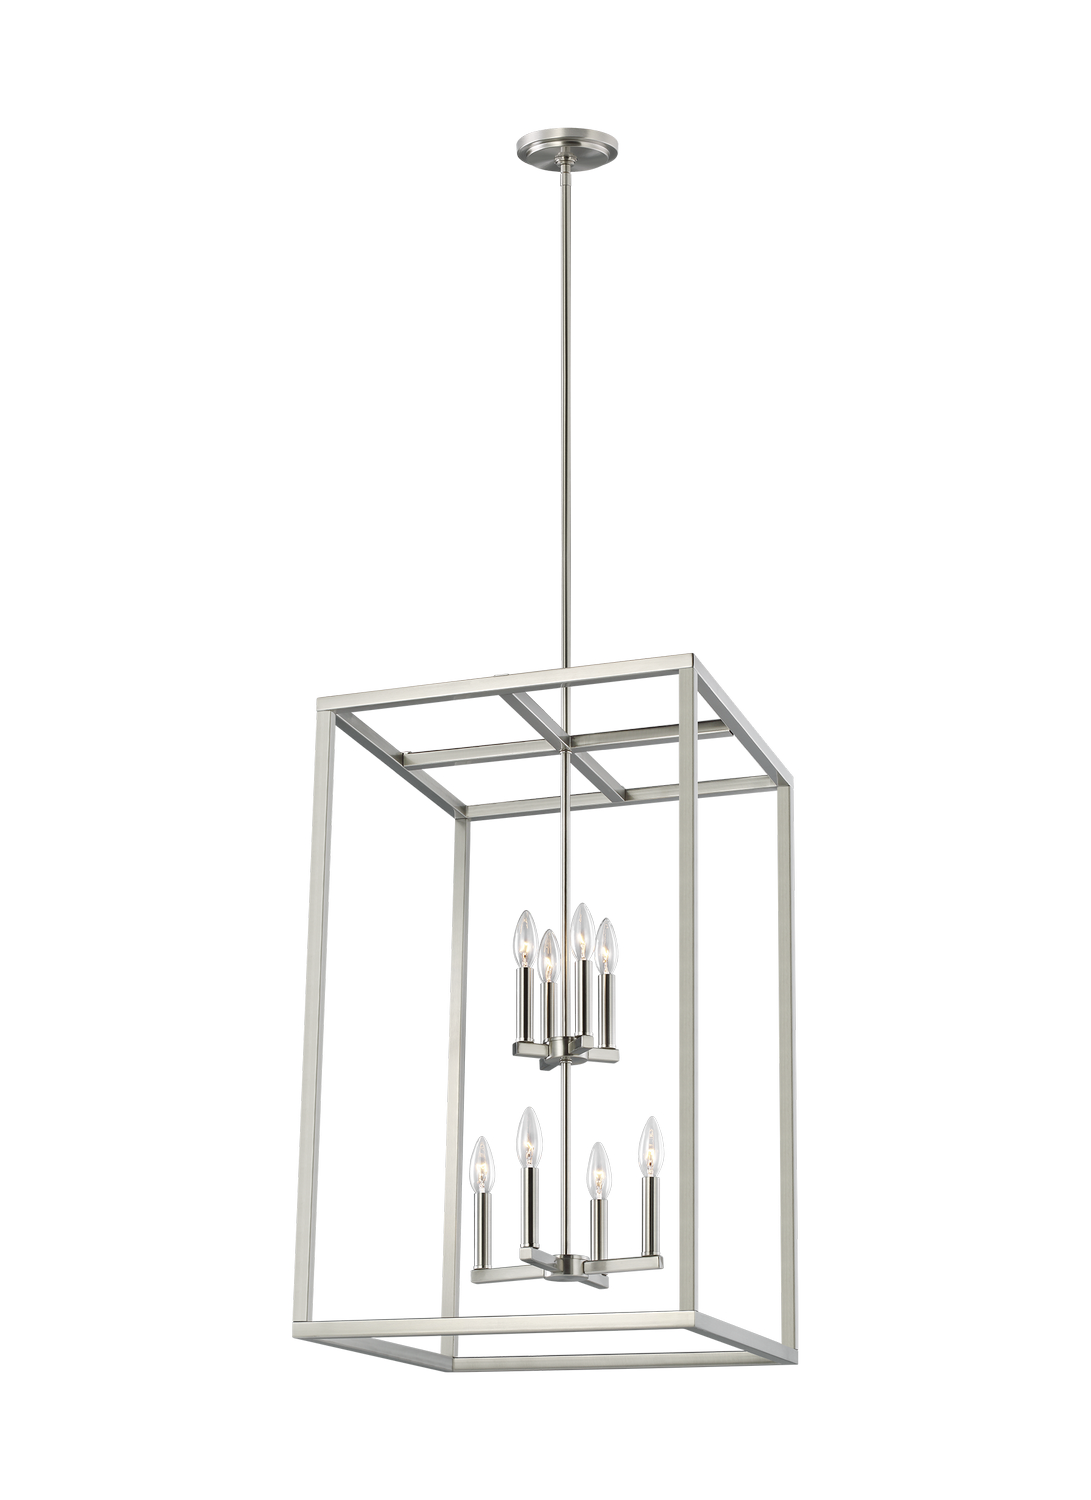 Eight Light Hall Foyer Pendant from the Moffet Street collection by Seagull 5134508EN 962